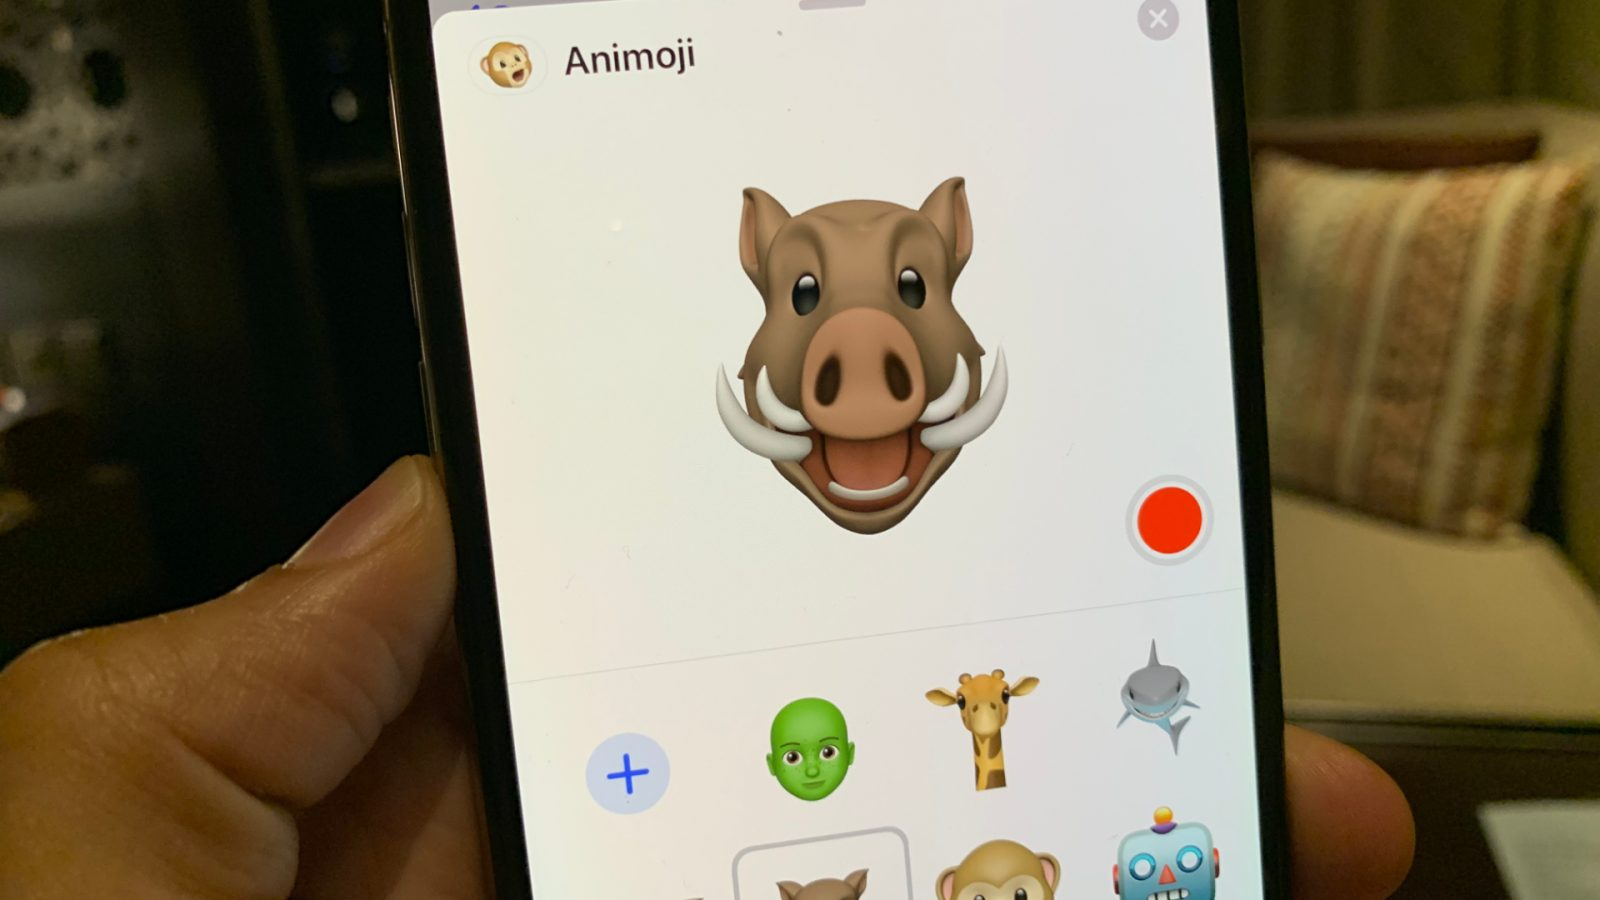 Animoji - 9to5Mac